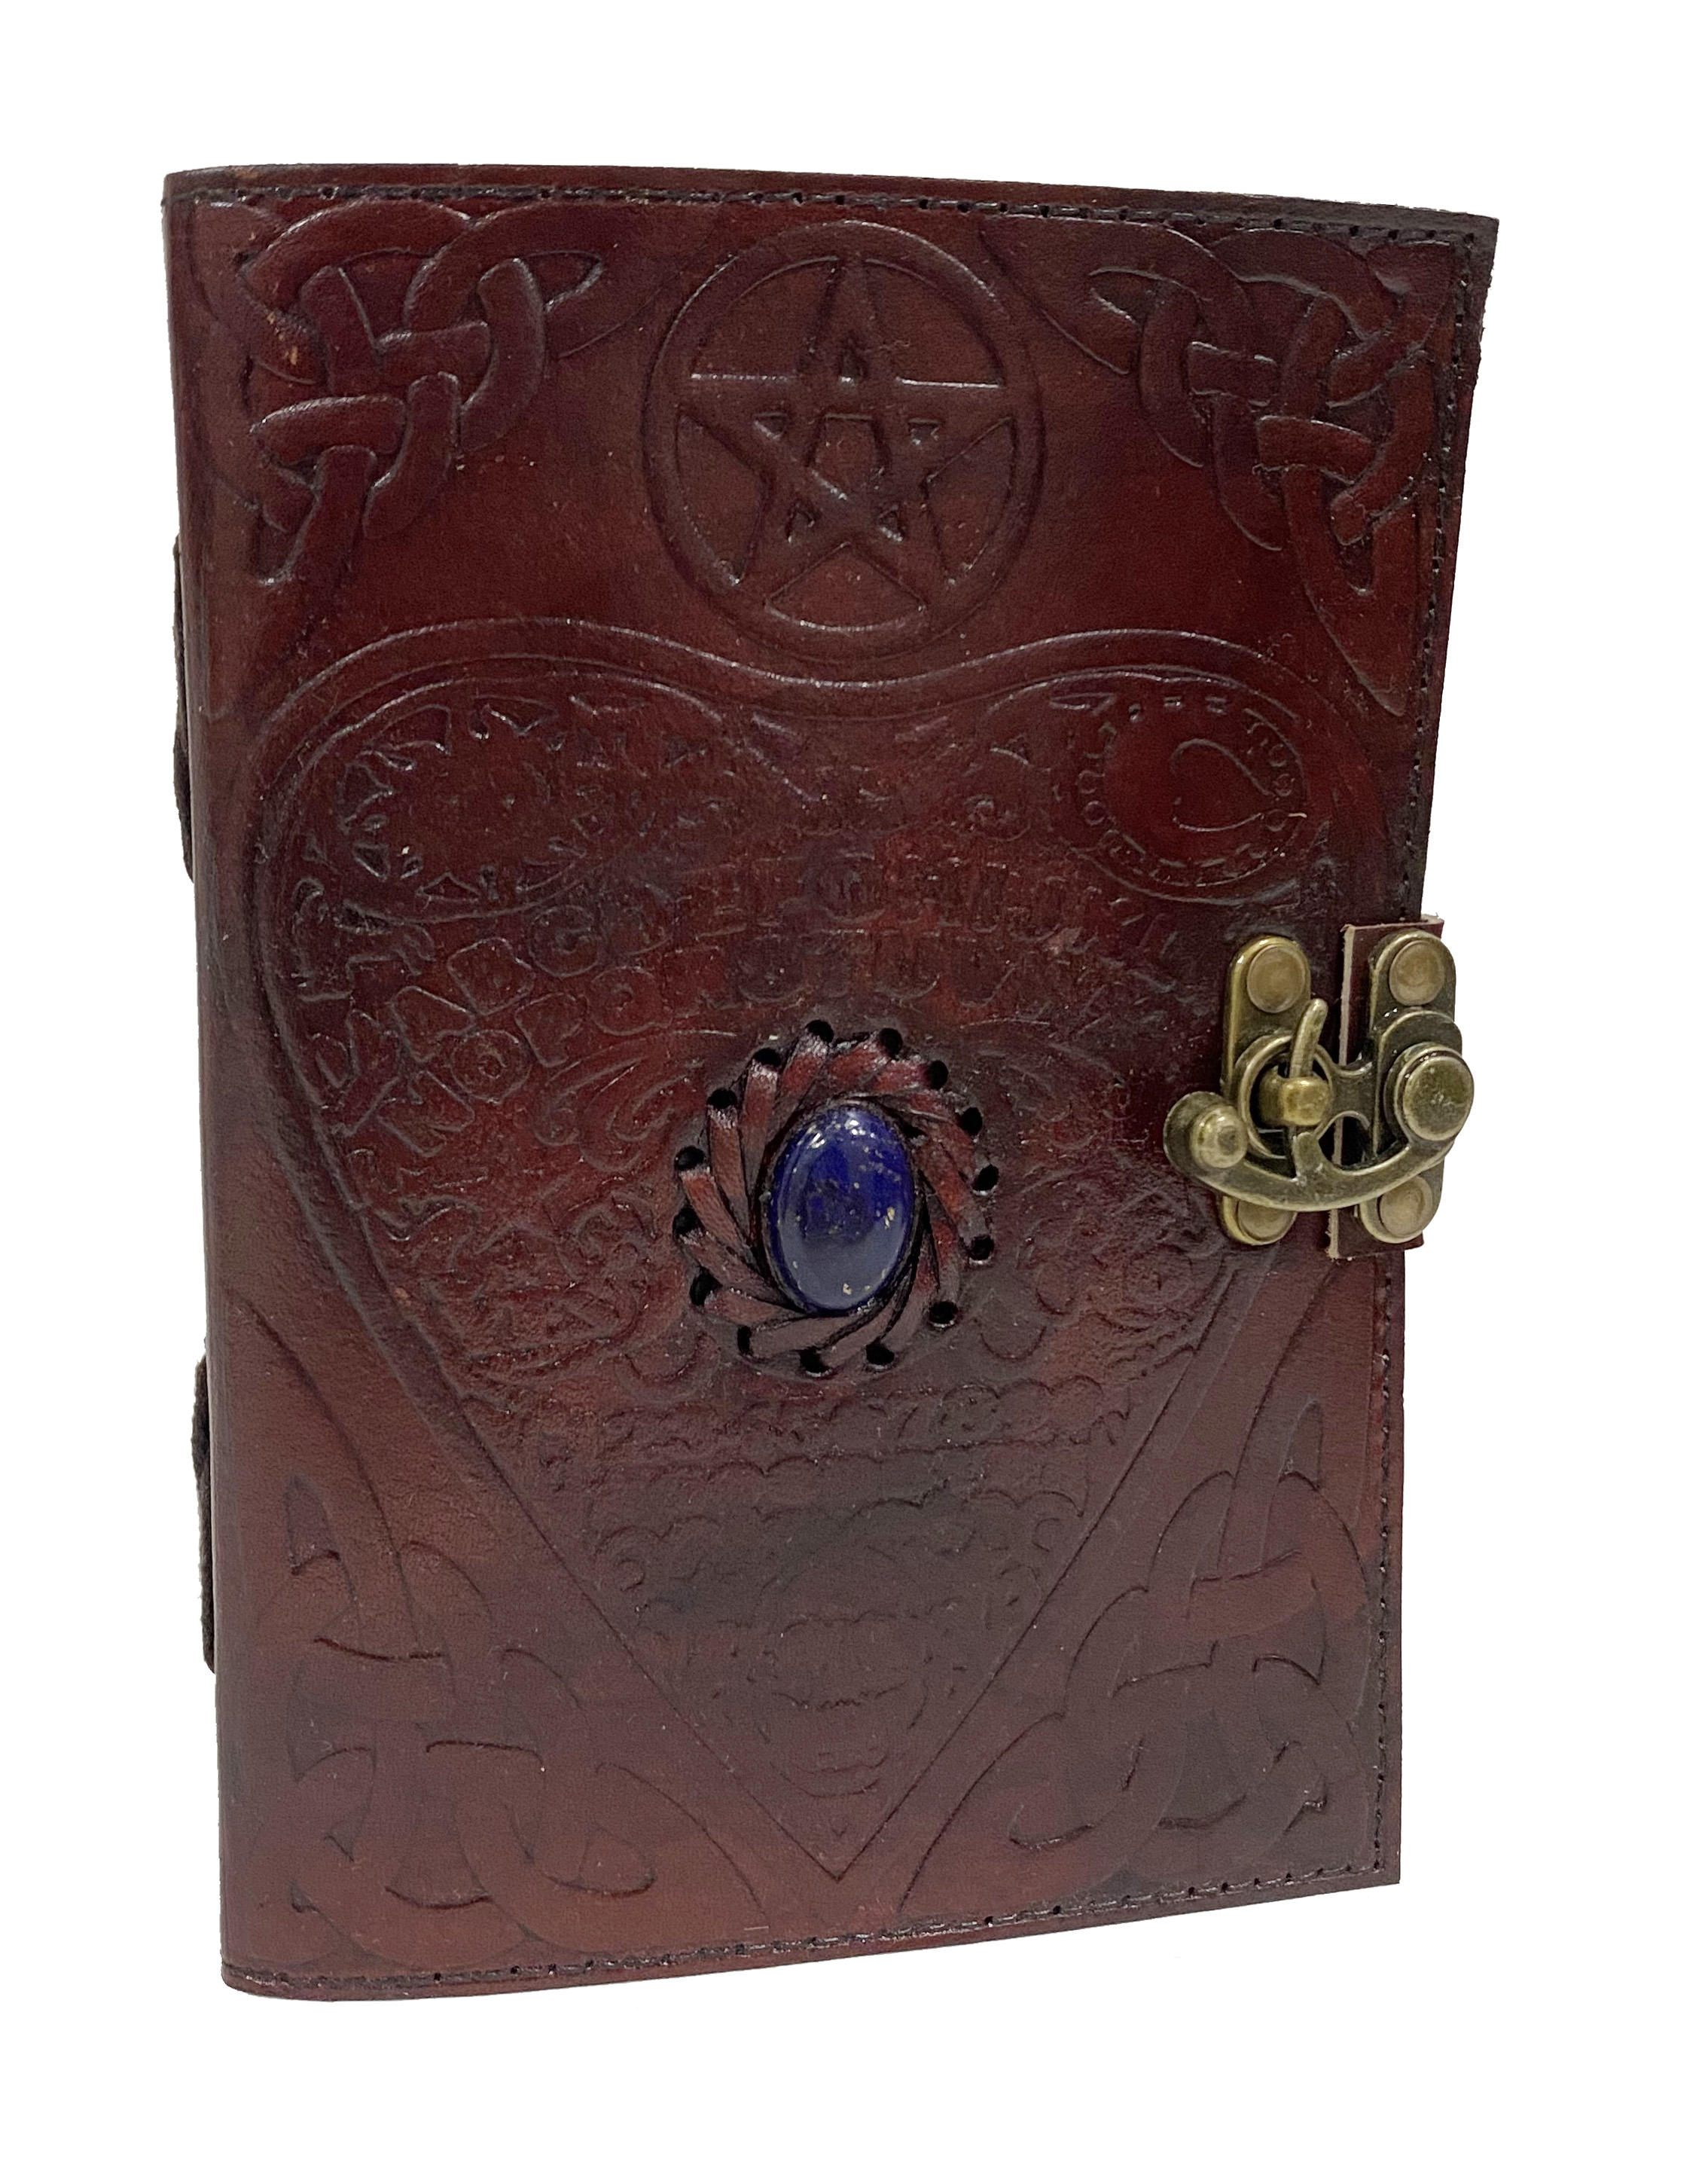 Book Of Shadows Leather Journal Celtic Love Heart Embossed With Third Eye Stone Handmade Notebook & Sketchbook